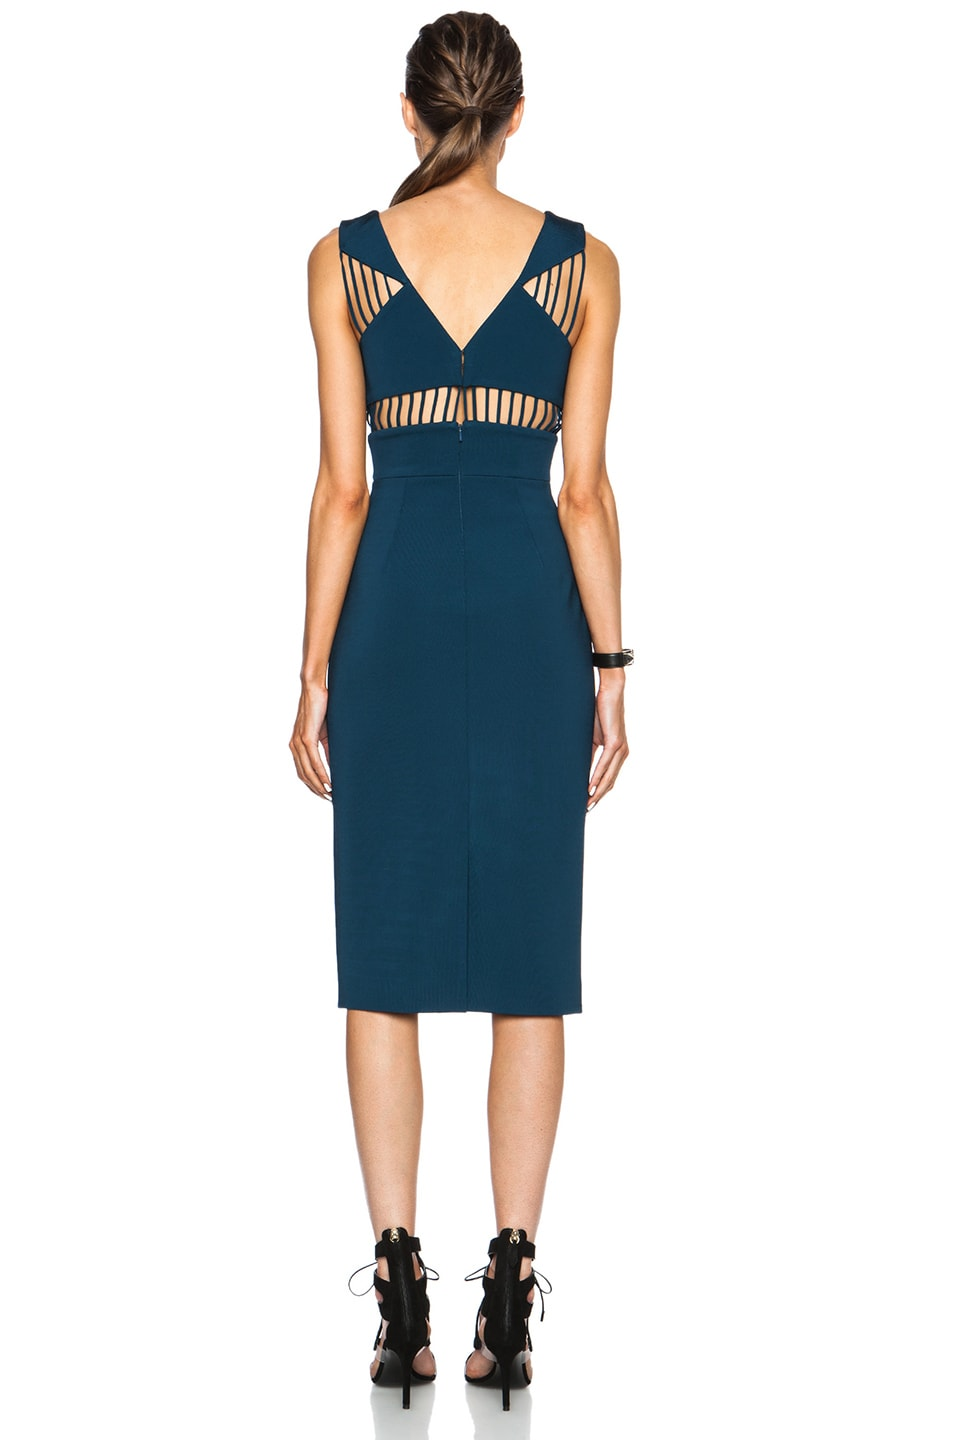 Image 4 of Cushnie et Ochs FORWARD EXCLUSIVE Power Viscose-Blend Dress in Blue Nile